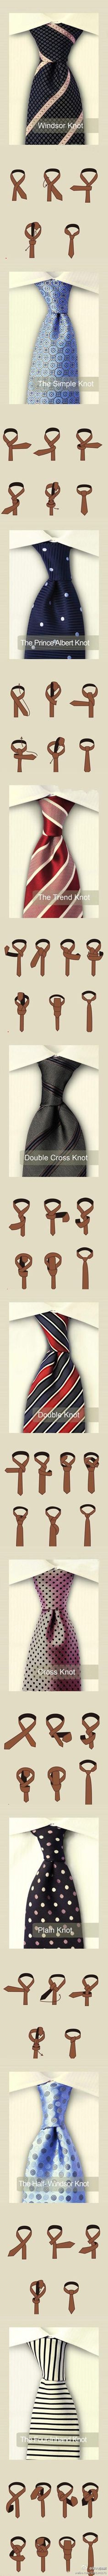 You need to know more than the four-in-hand knot